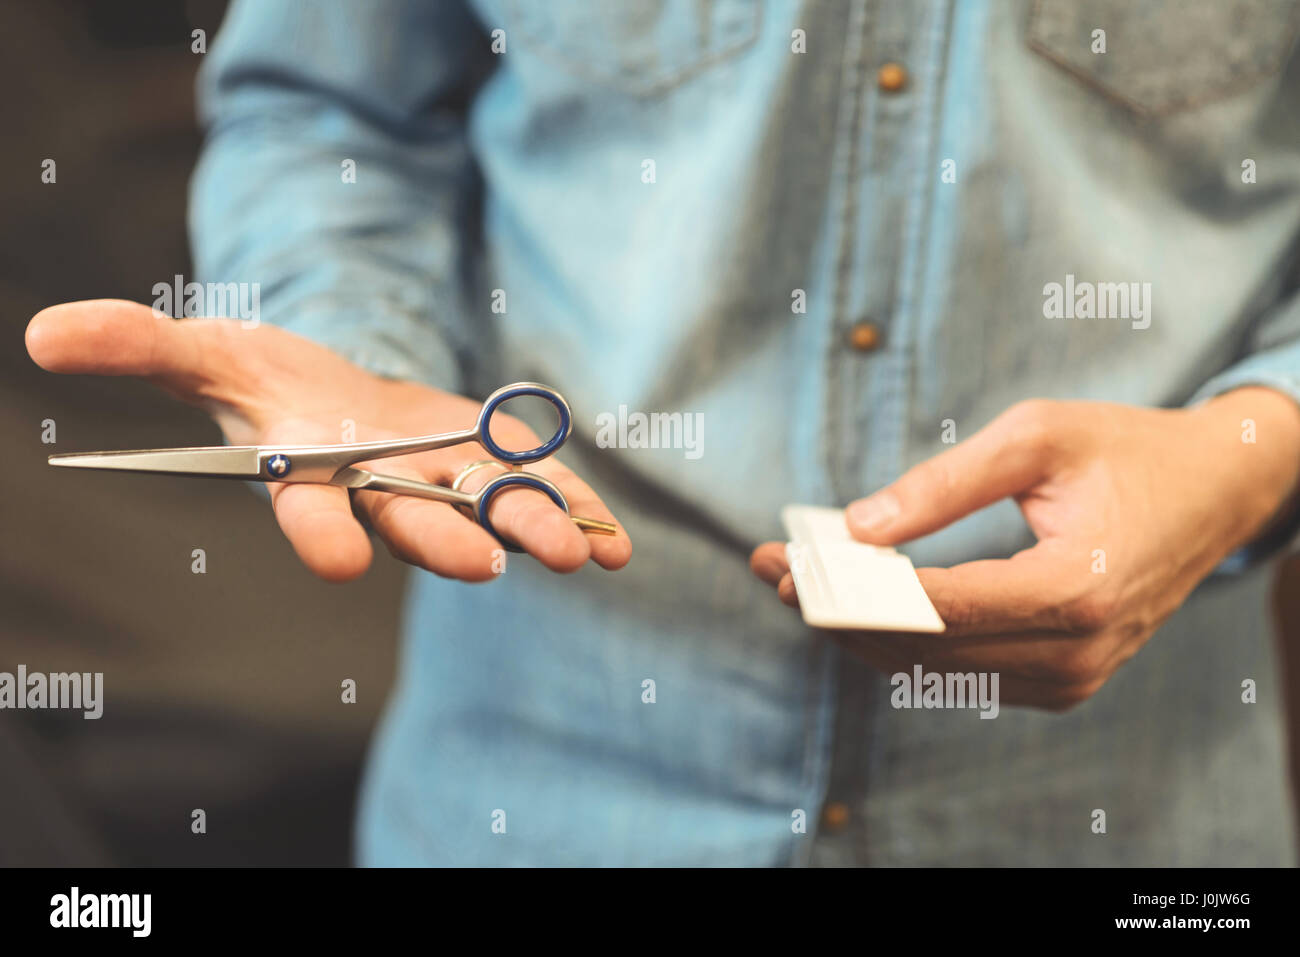 Young master holding comb and scissors in the salon - Stock Image